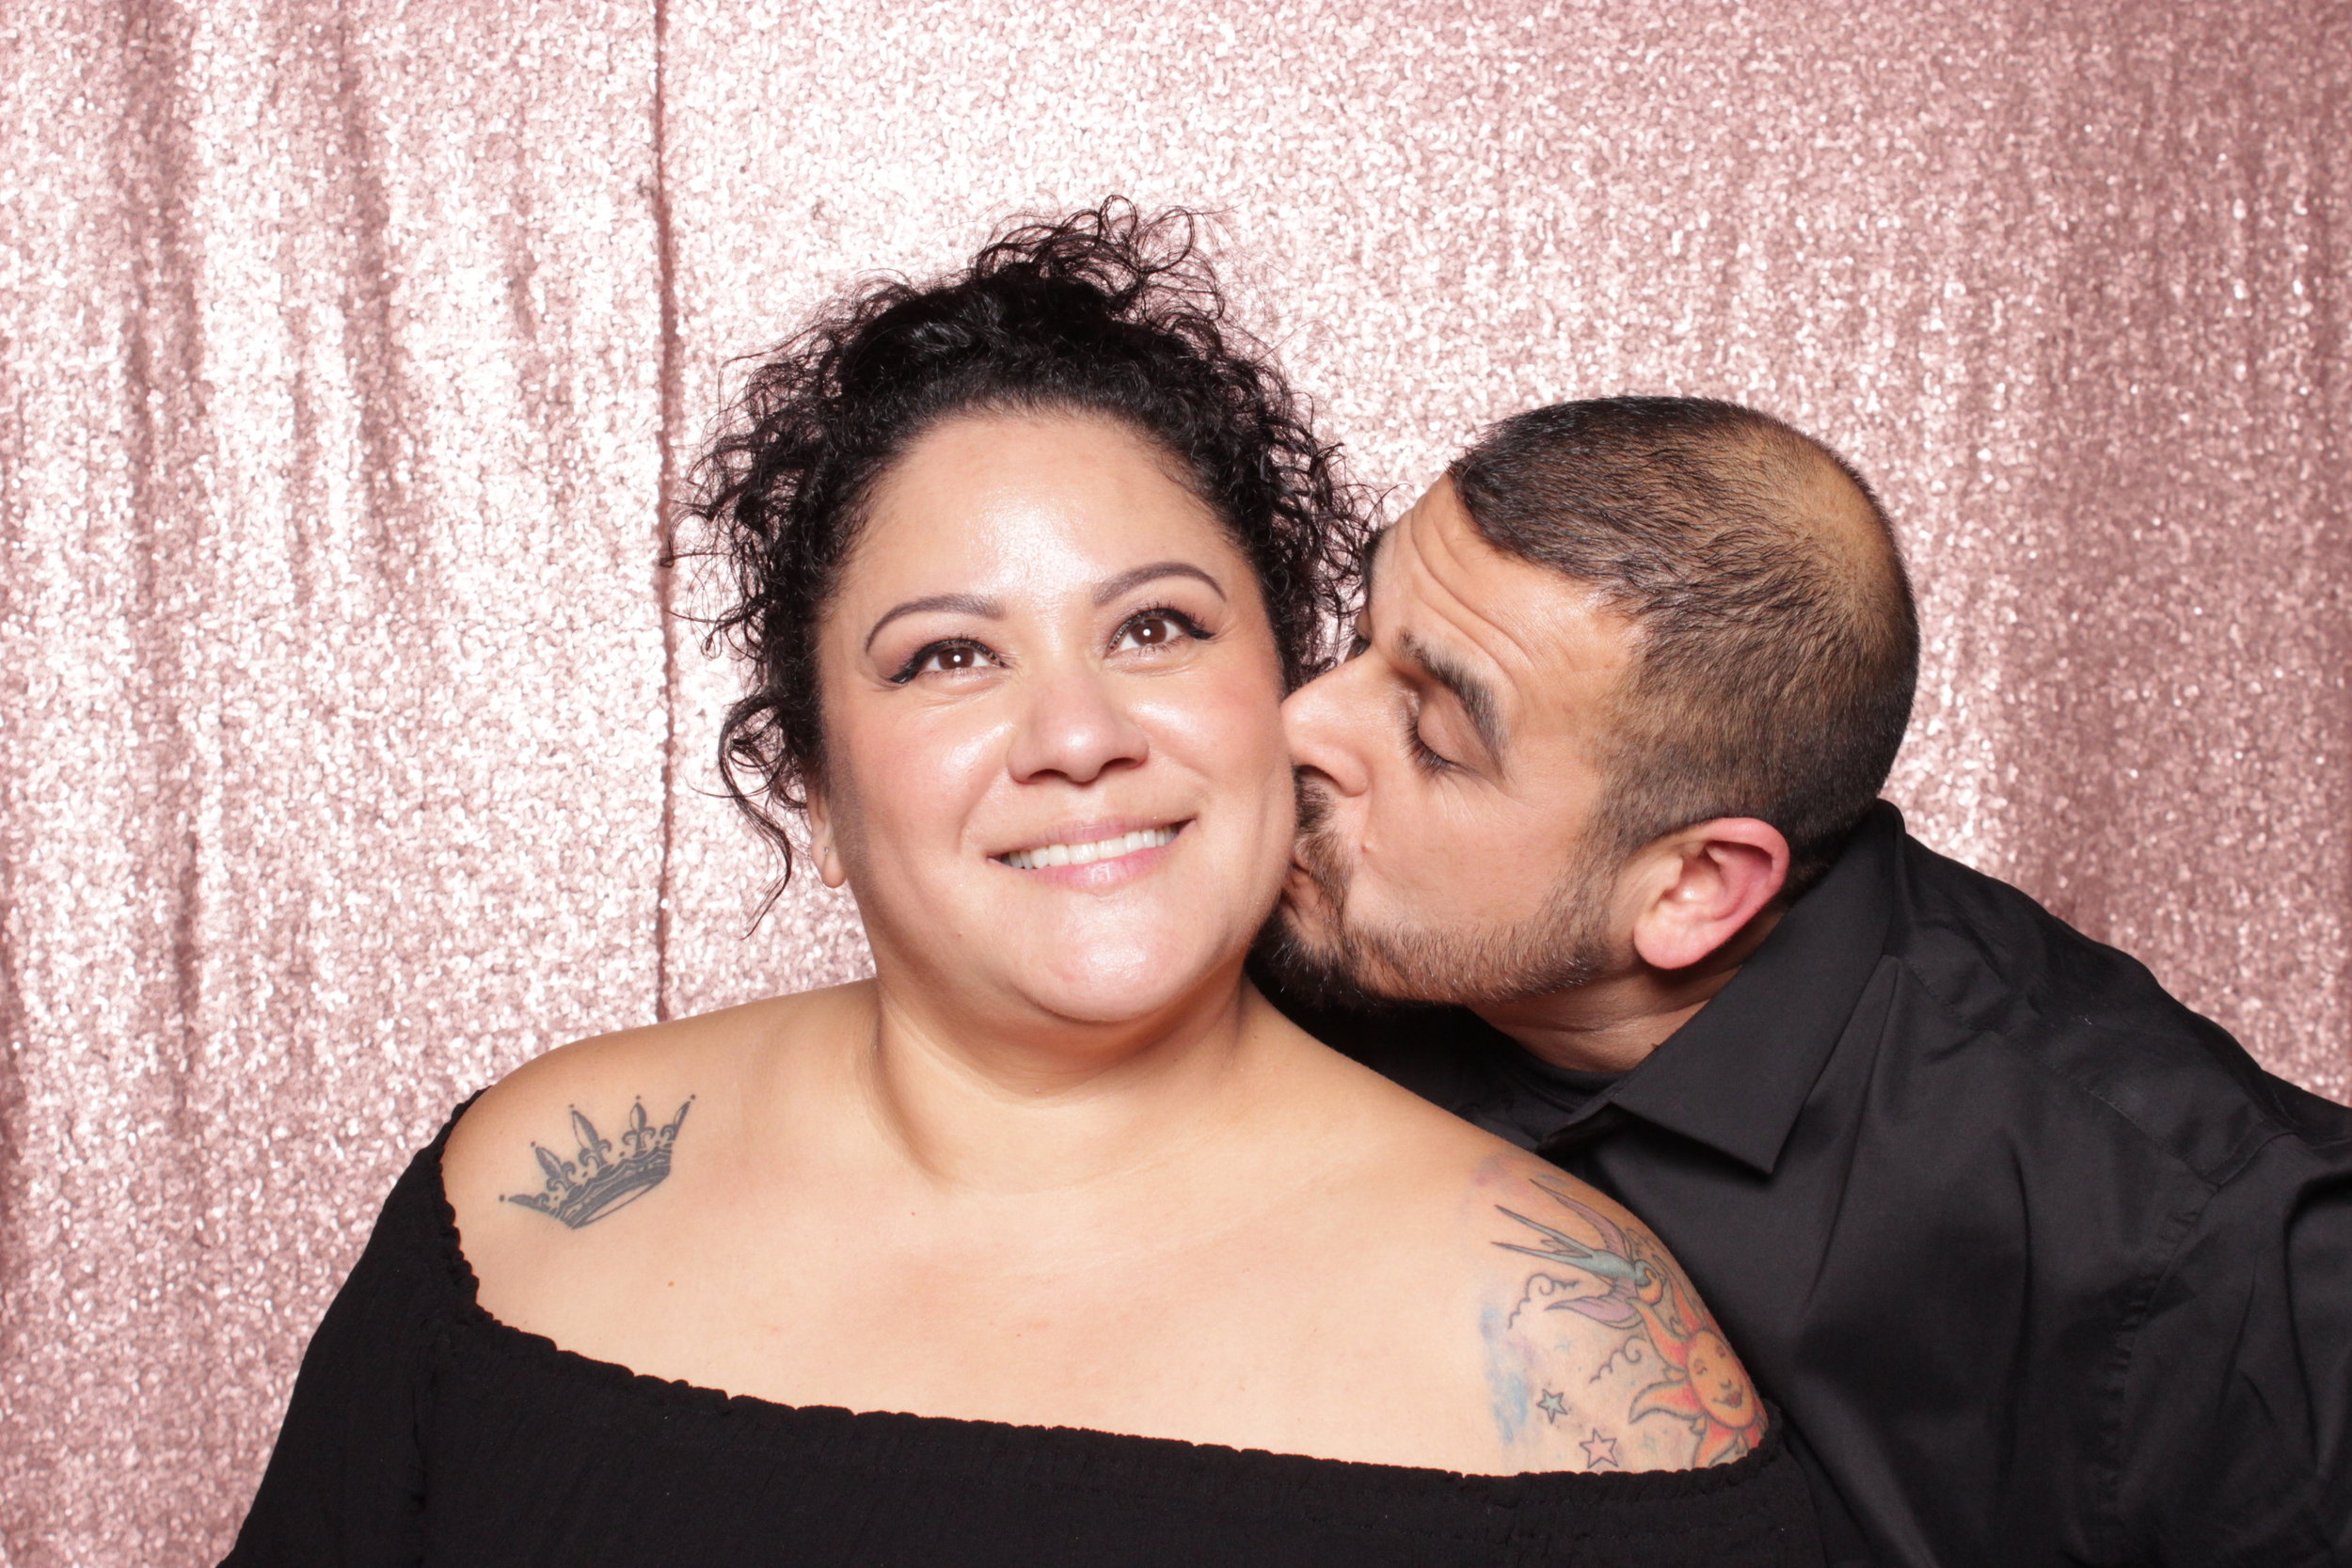 Chico-photo-booth-rental-party-atractions